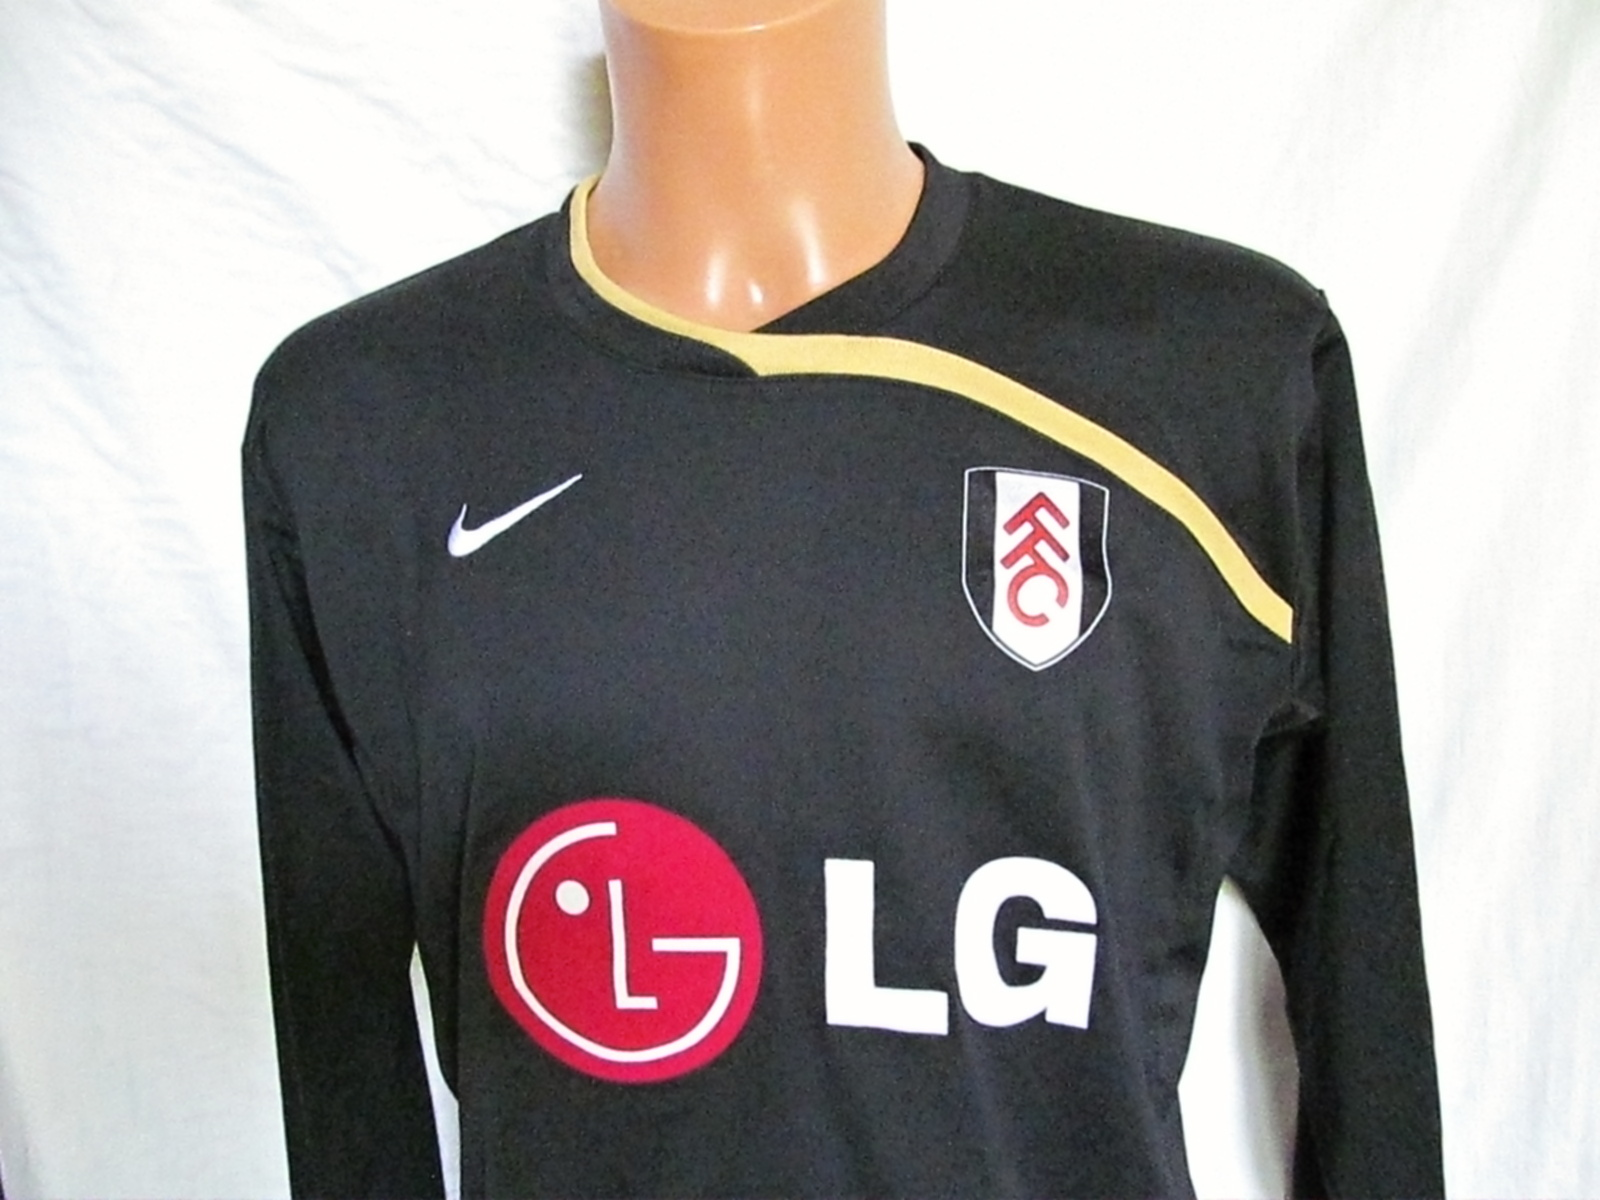 Fulham Football Club FFC away football shirt 2009-10 size M